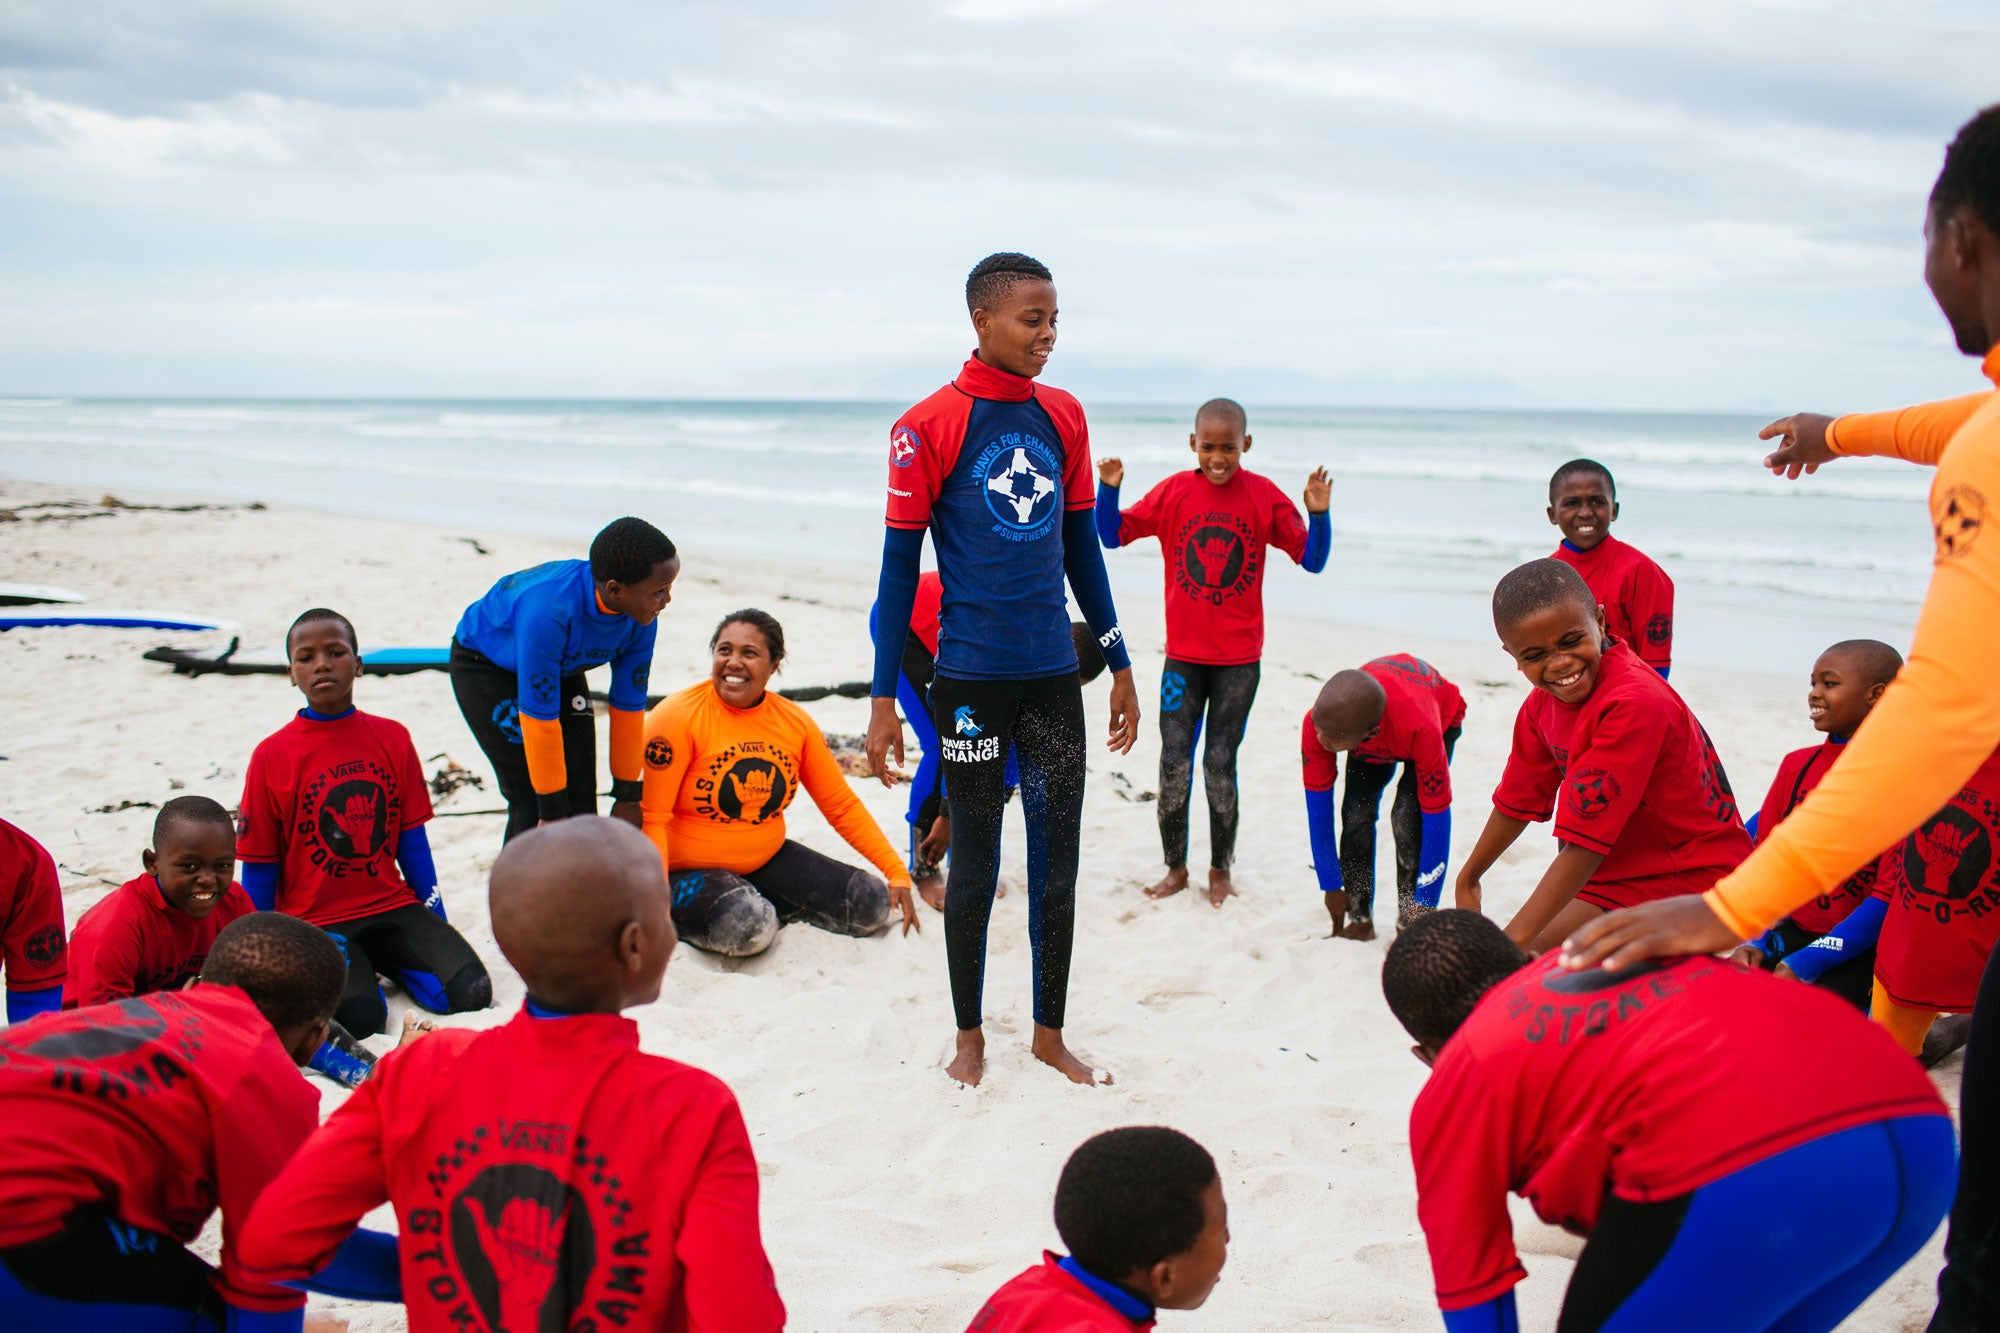 A Waves For Change session underway on the beach in South Africa